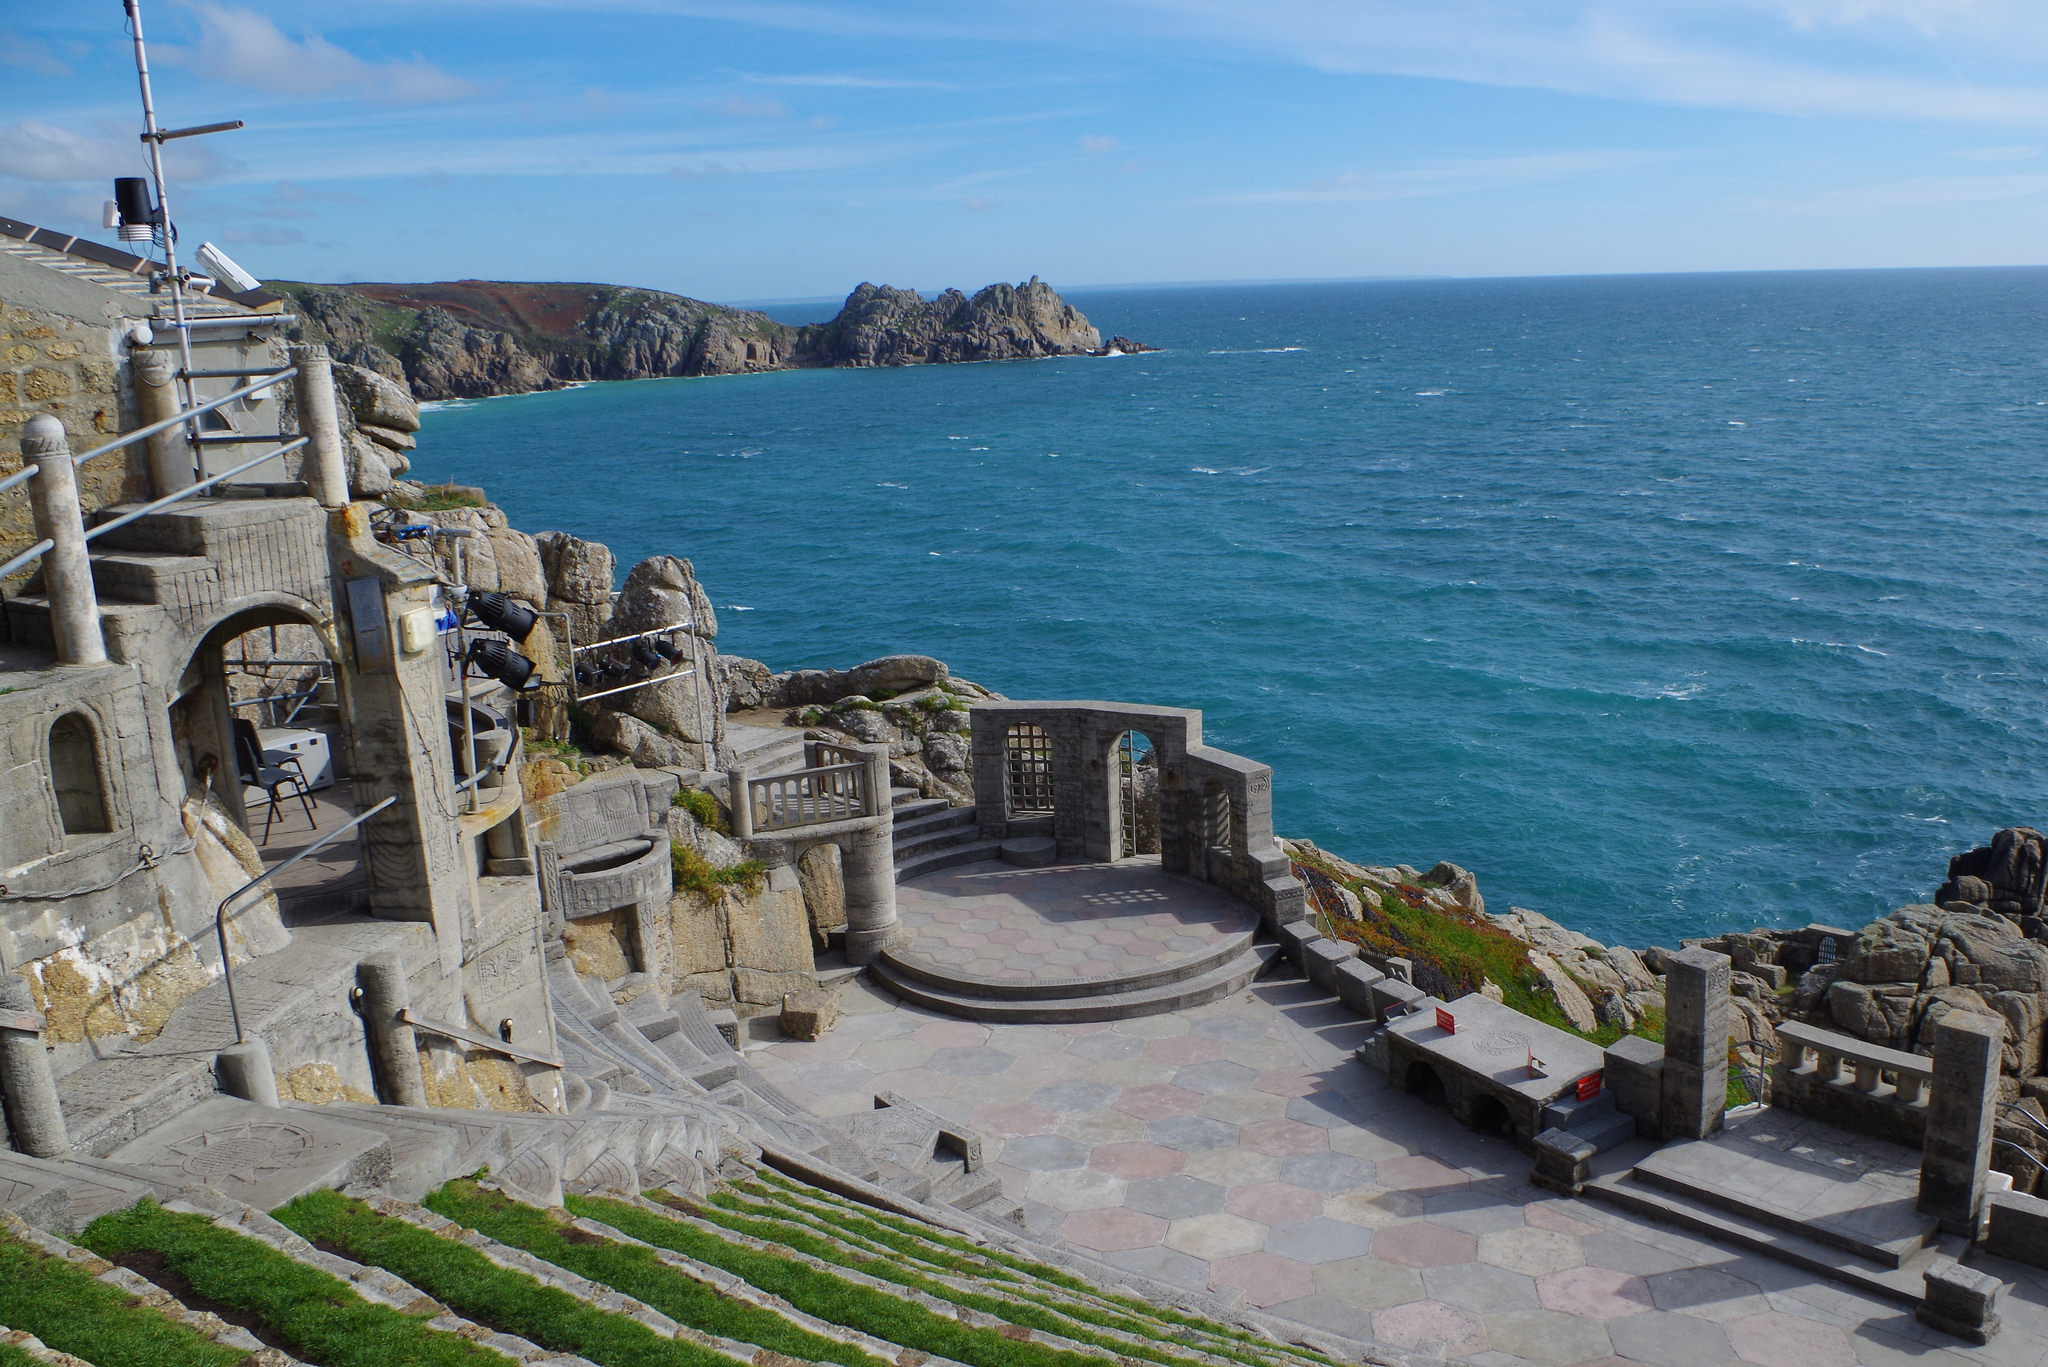 Minack Theatre in Penzance | © Luke McKernan / Flickr